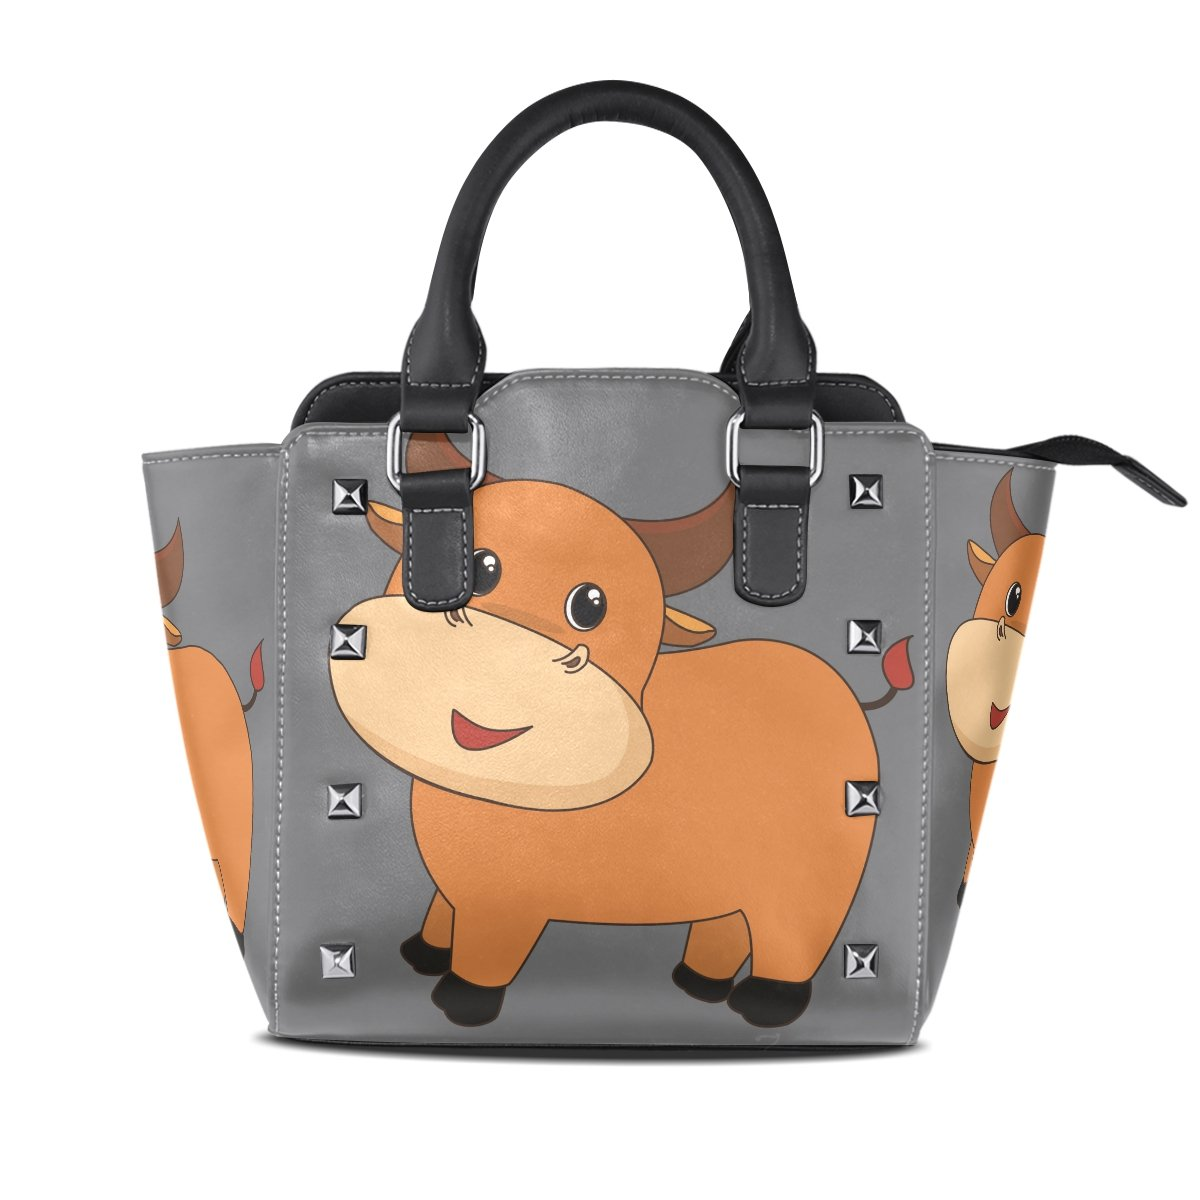 Womens Genuine Leather Hangbags Tote Bags Brown Cow Purse Shoulder Bags